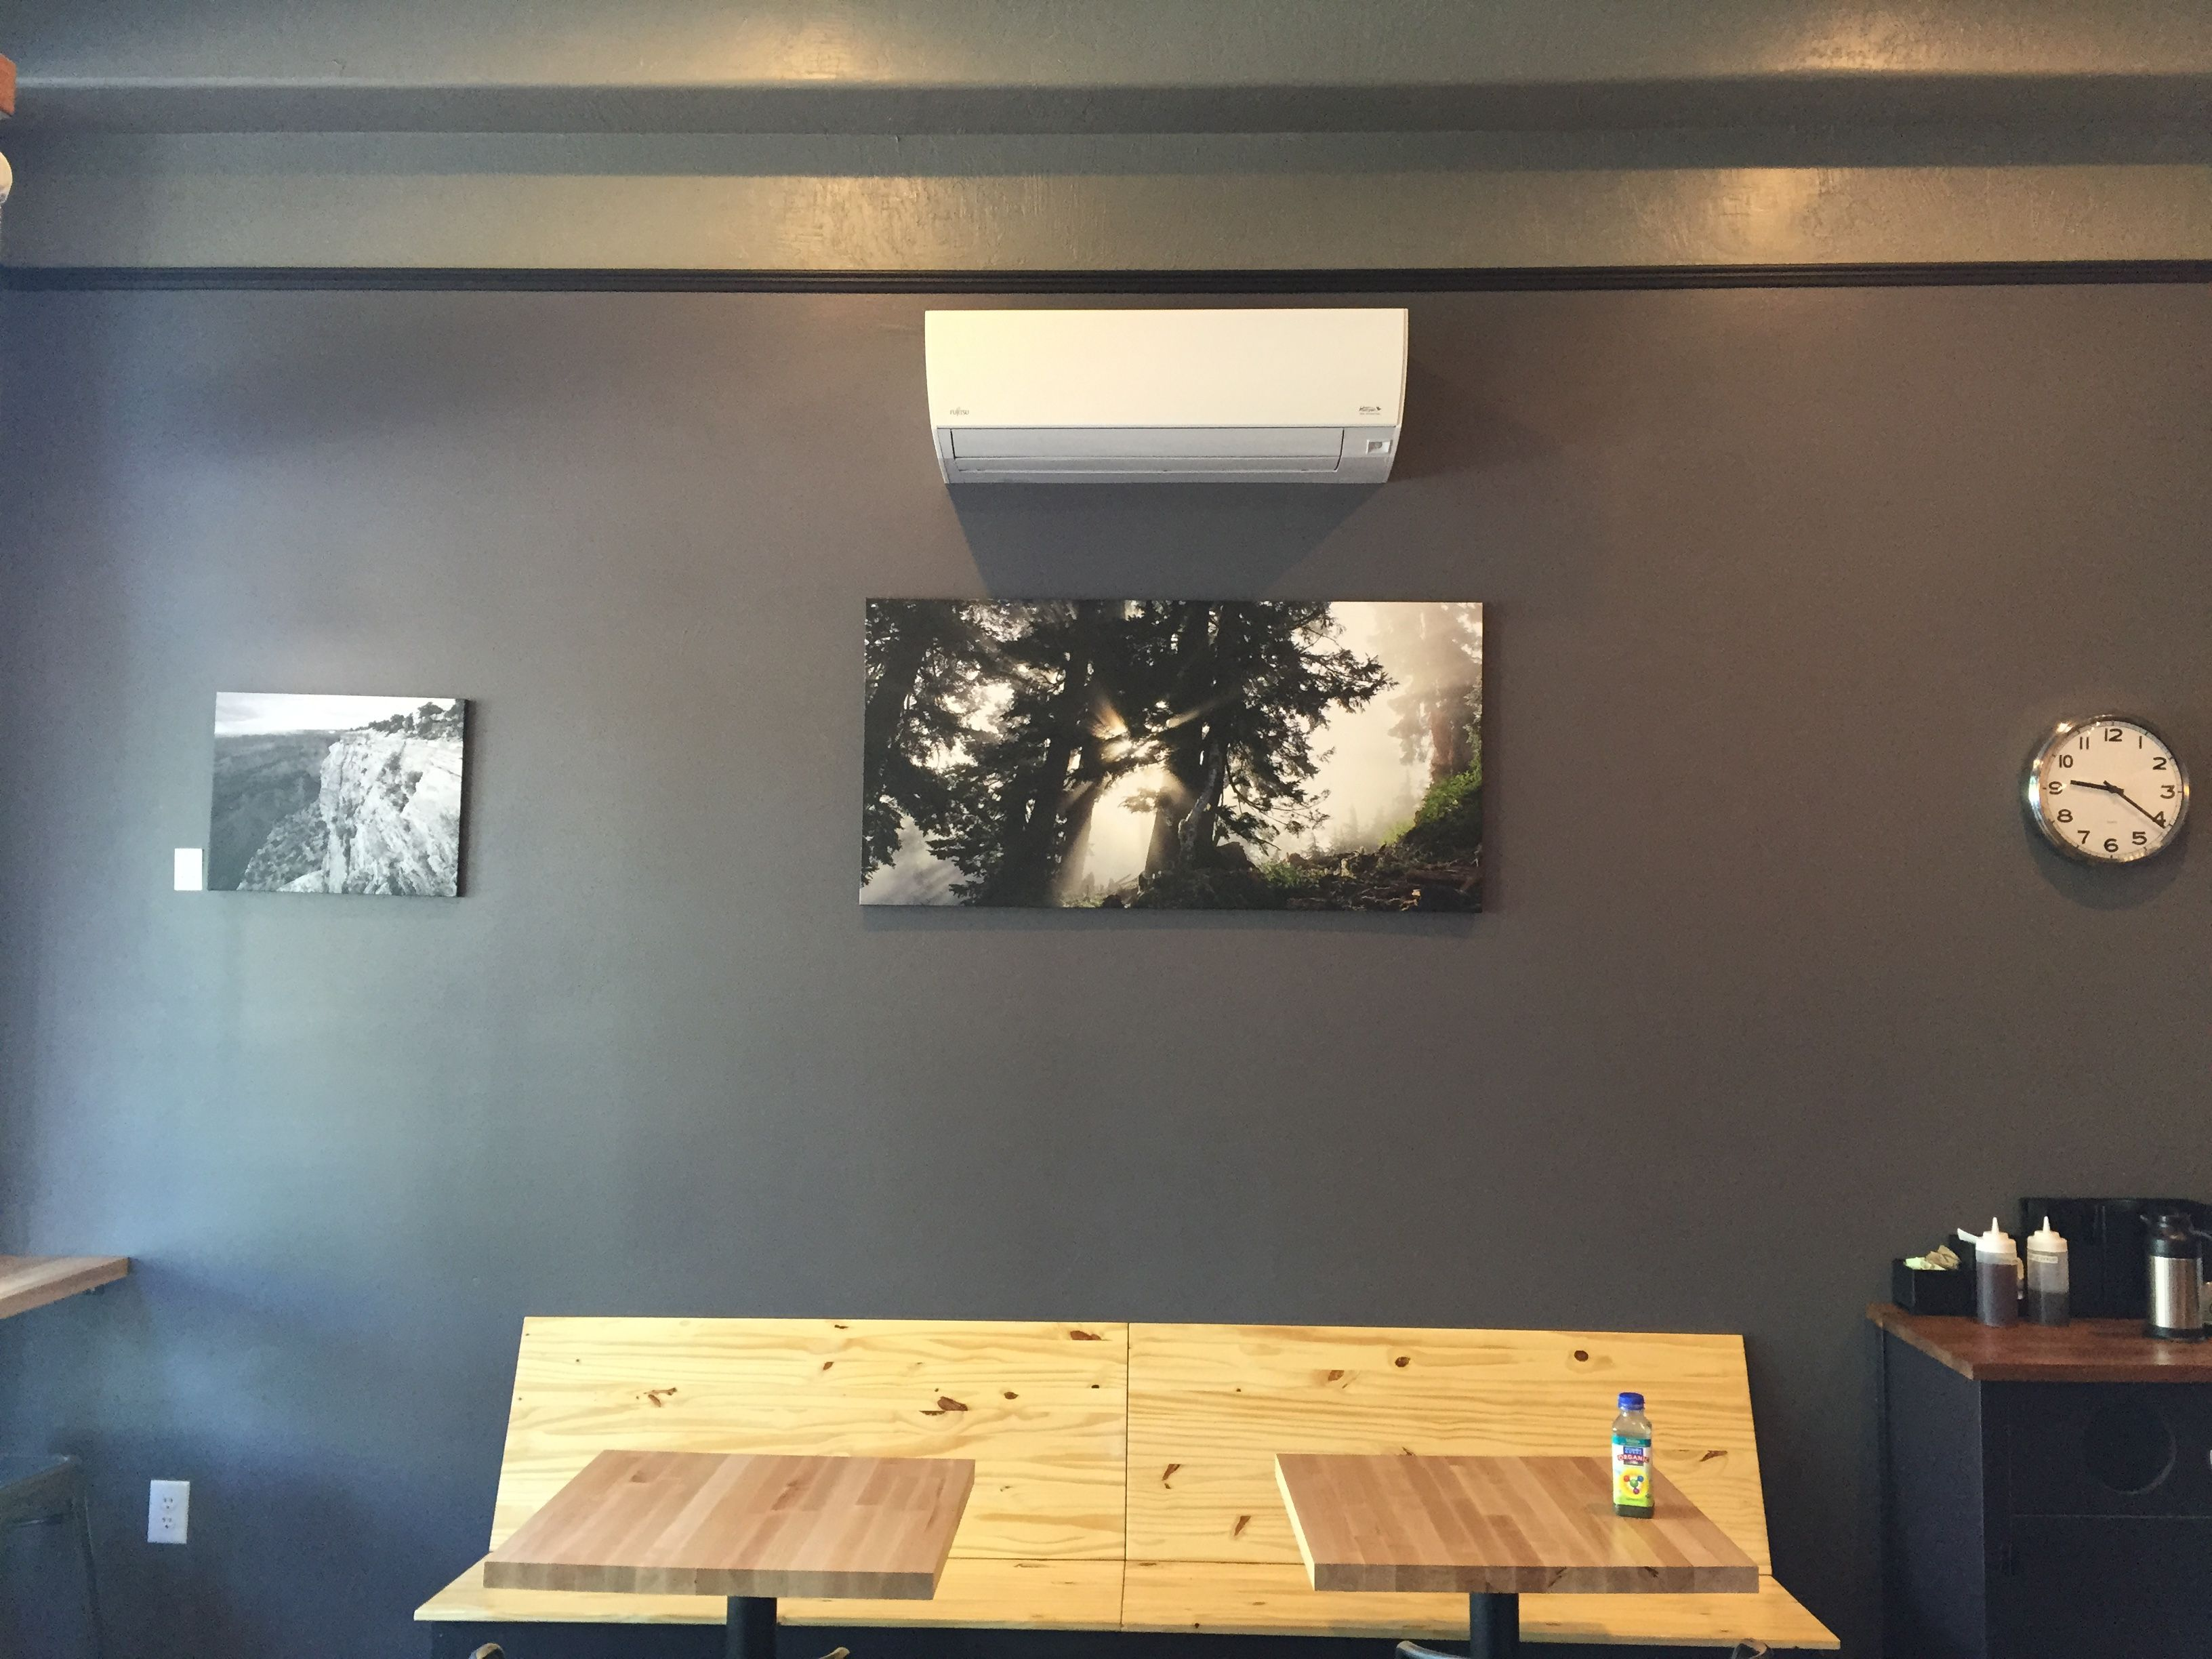 Fujitsu Indoor Wall Mounted Unit In Local Coffee Shop Heating